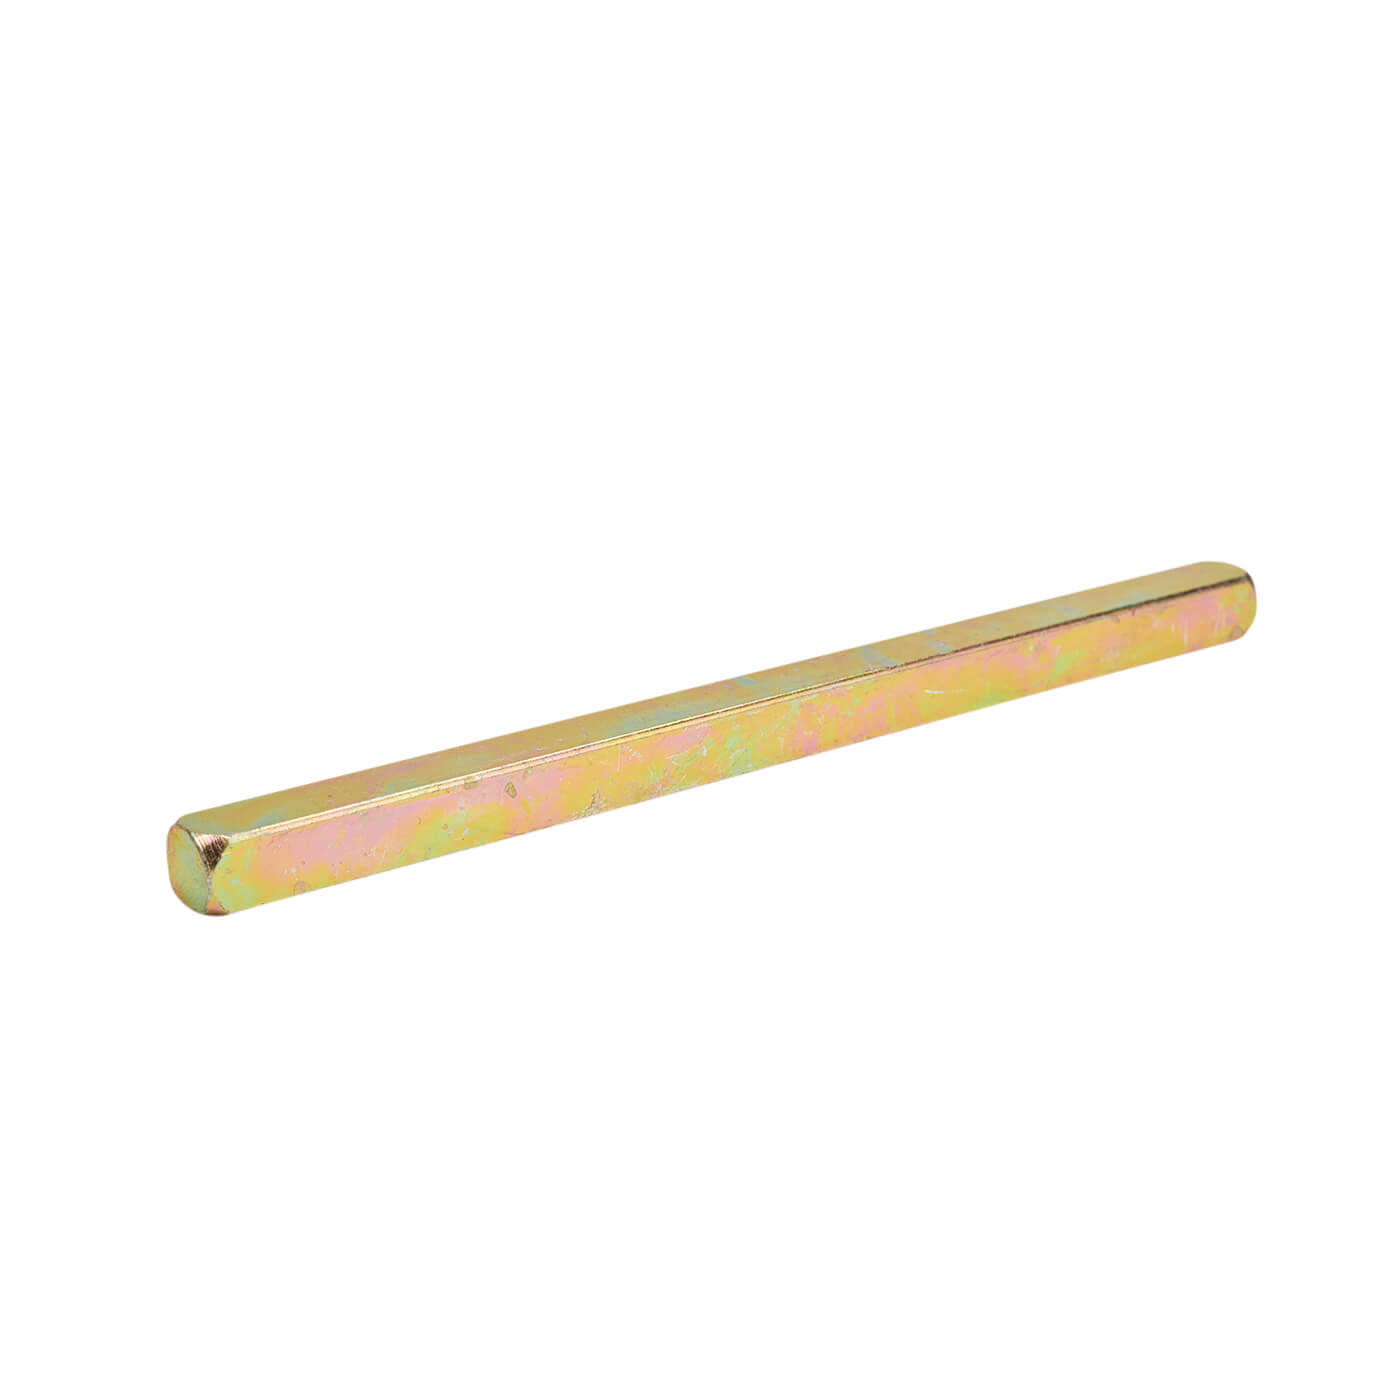 Plain Steel Spindle - 8 x 138mm)